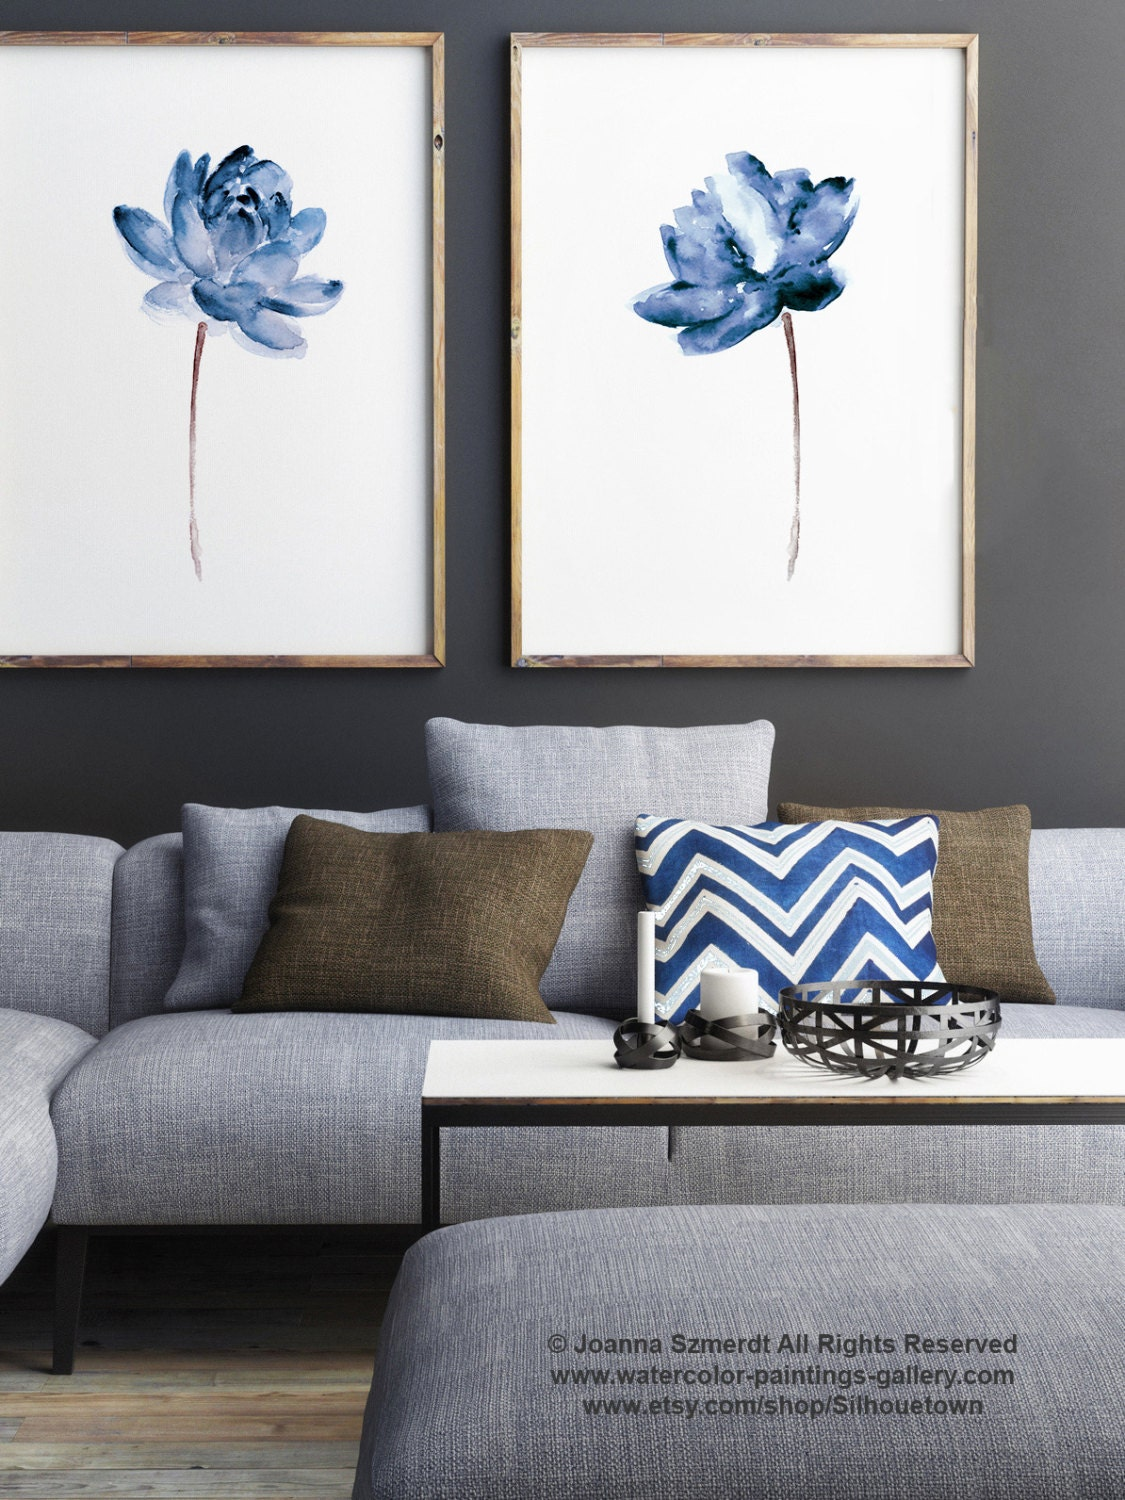 lotus set of 2 watercolor painting blue water flowers art. Black Bedroom Furniture Sets. Home Design Ideas